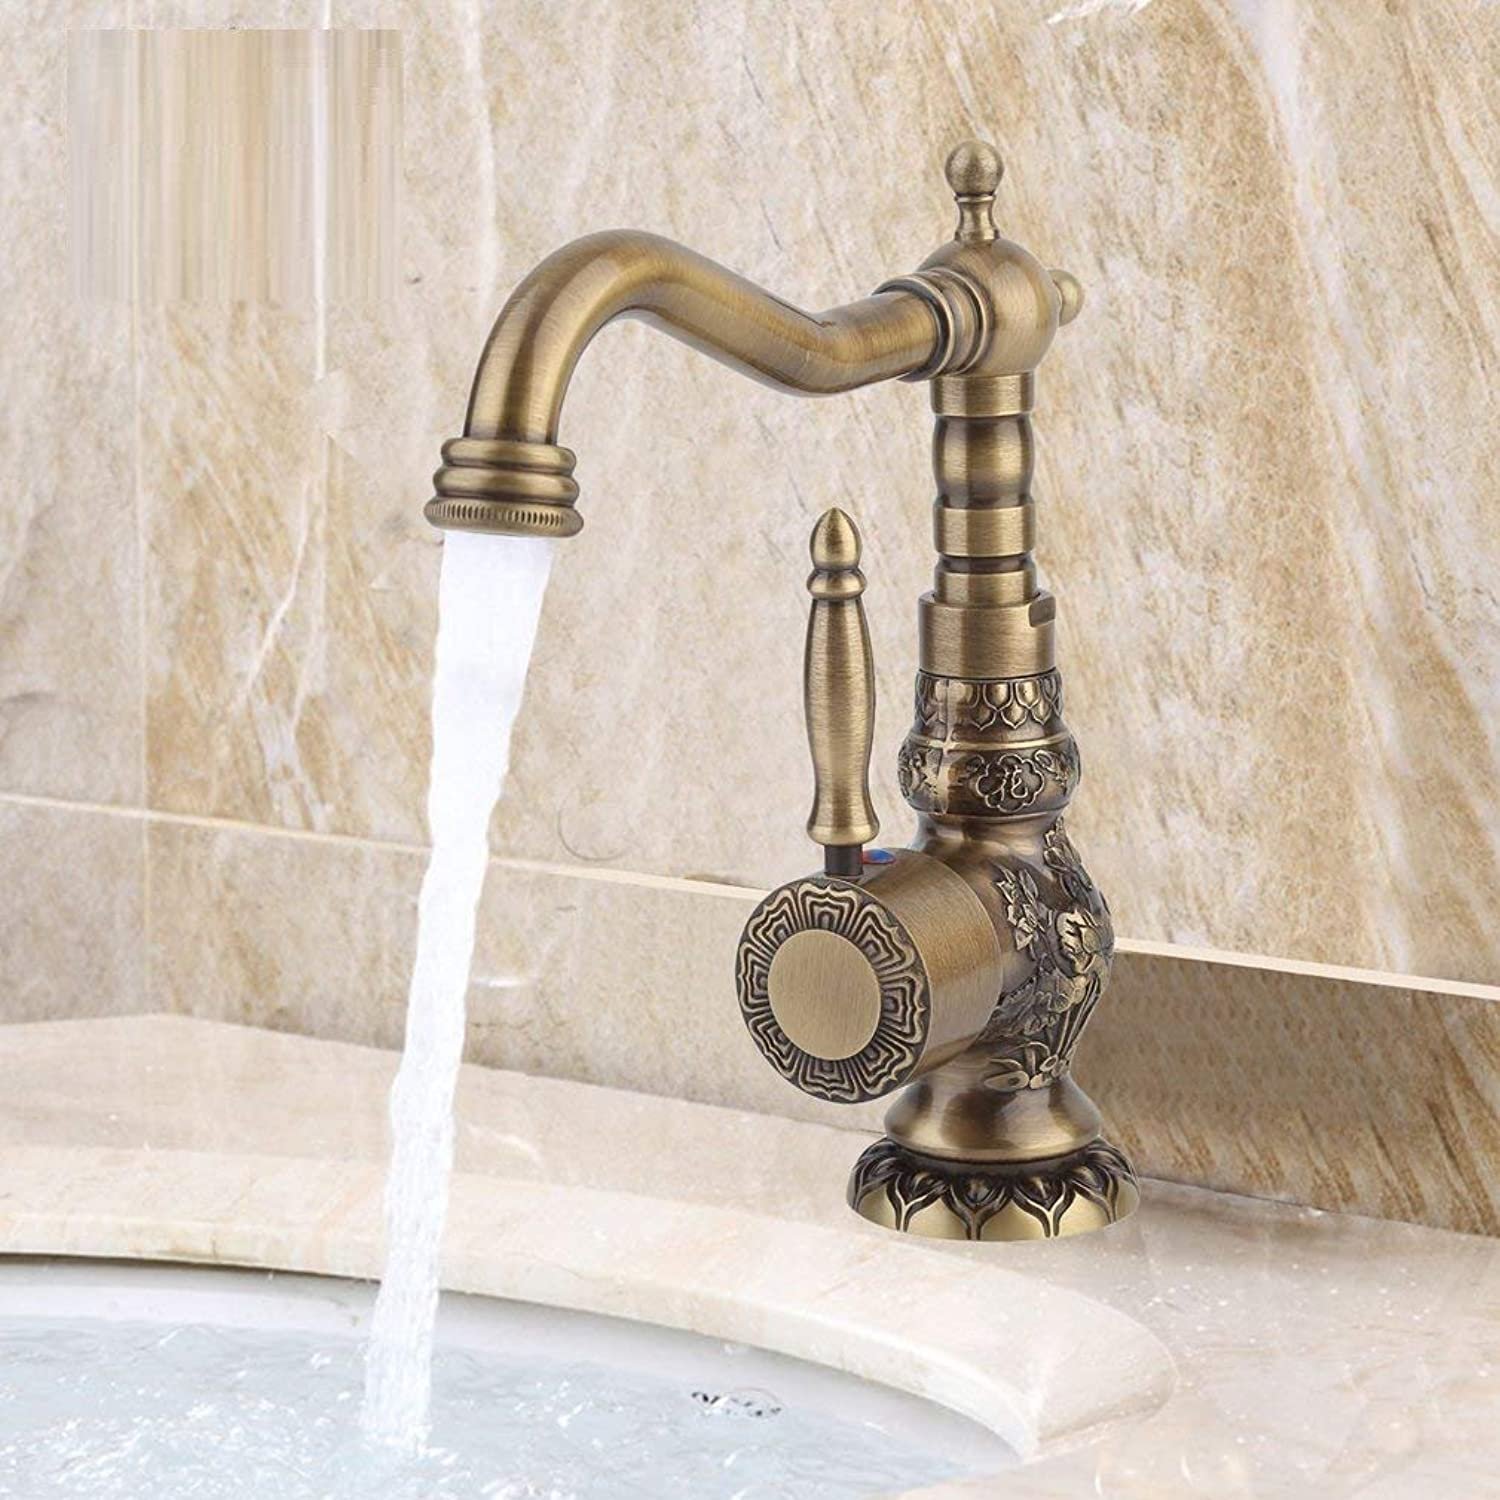 redOOY Taps European Antique Exquisite Carved Copper Water Basin Sink Brass Faucet Single Hole Mixer Kitchen Tap Taps